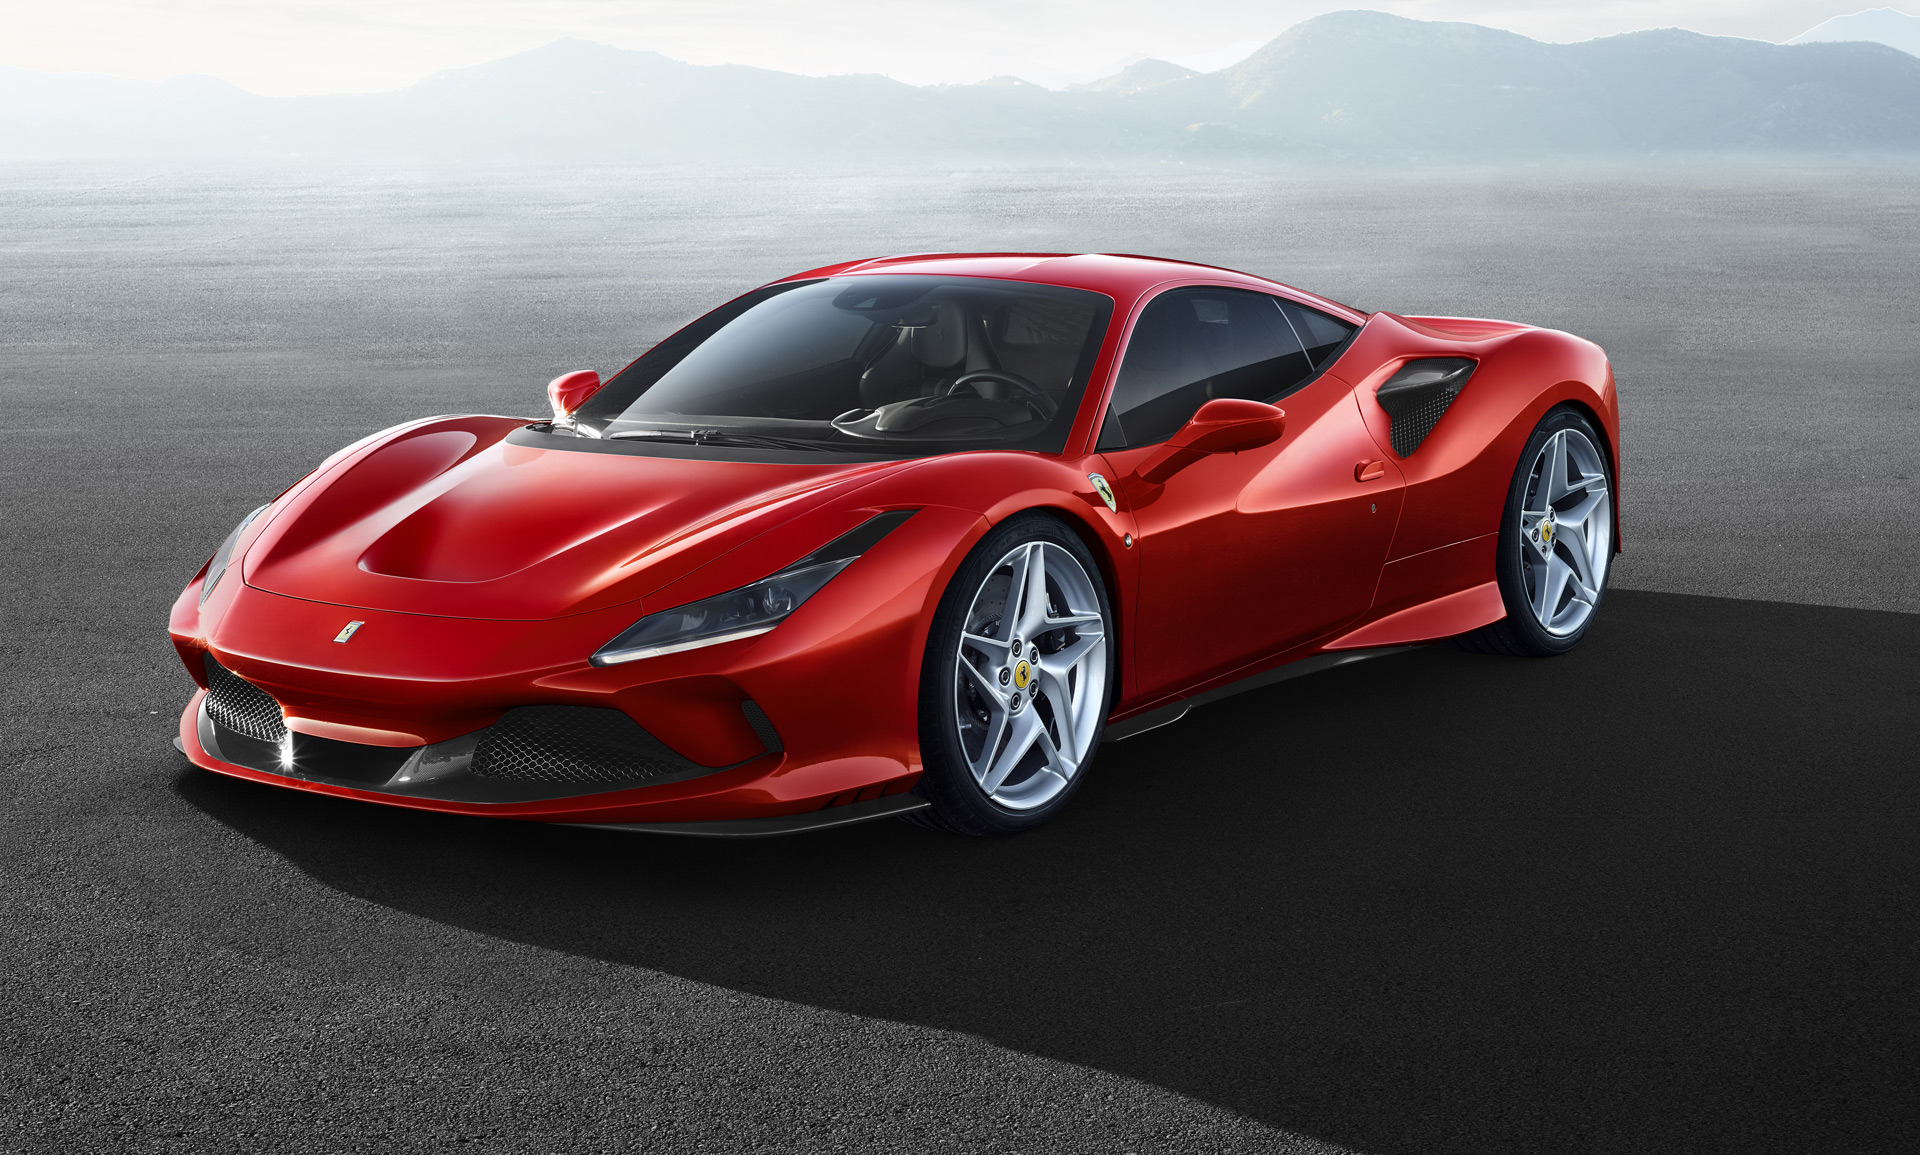 f8 tributo first of 5 new ferraris due in 2019